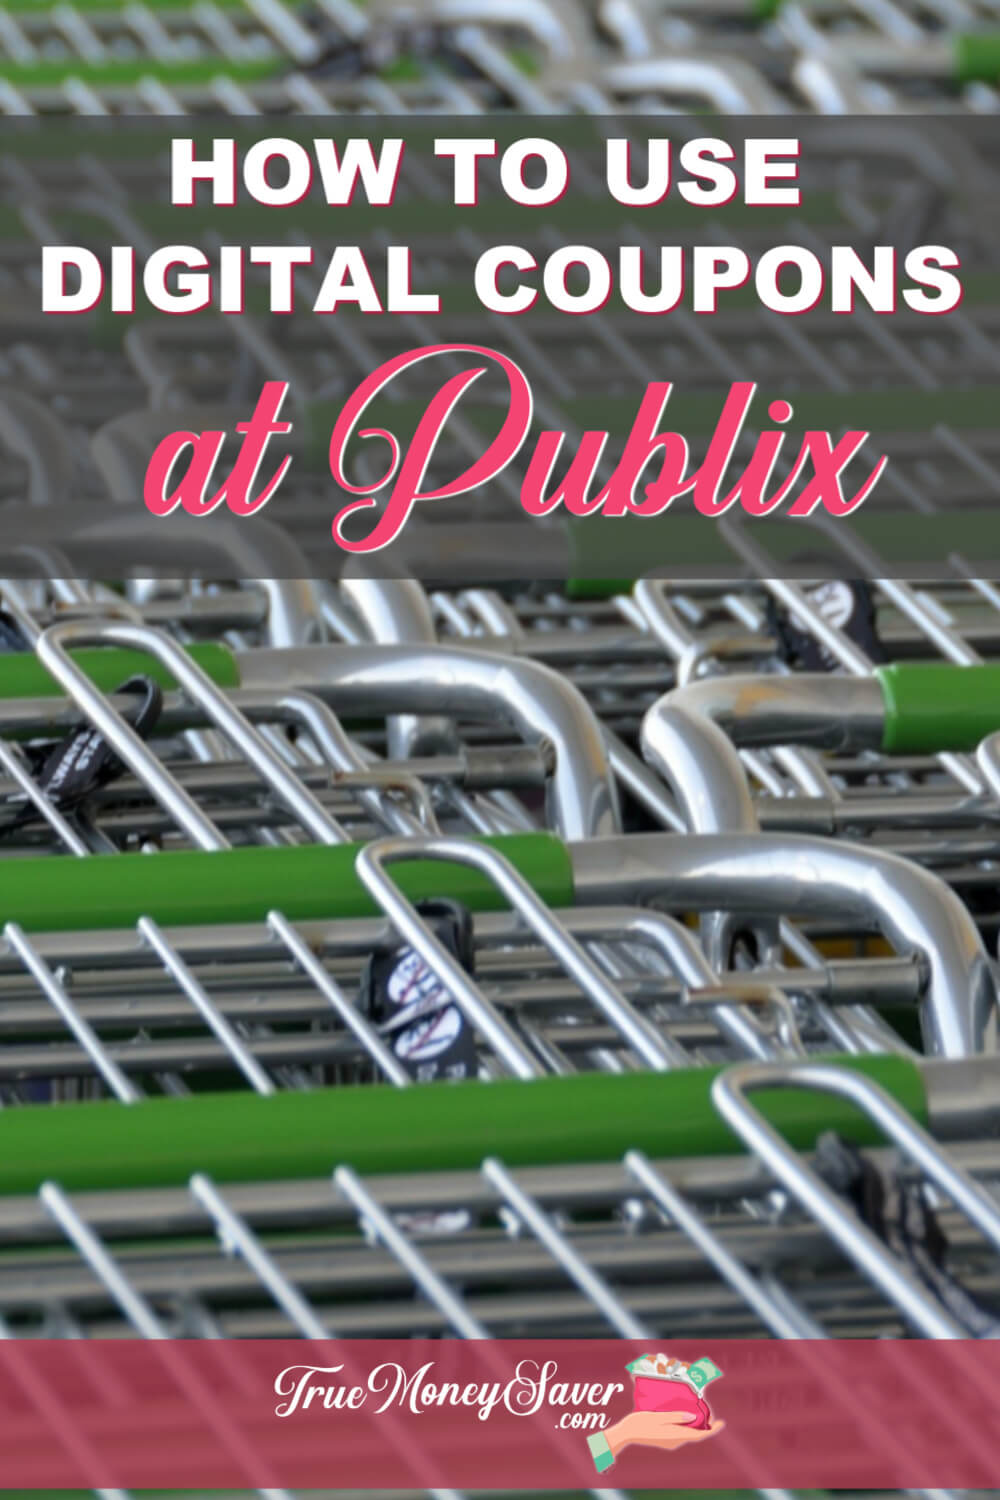 How to Use Digital Coupons at Publix | Saving with coupons does not have to be with paper and scissors. Learn how to save at Publix with a quick "|1000|1500|?|38c5a77e284e544a4d26932844bb0311|False|UNLIKELY|0.4037773609161377